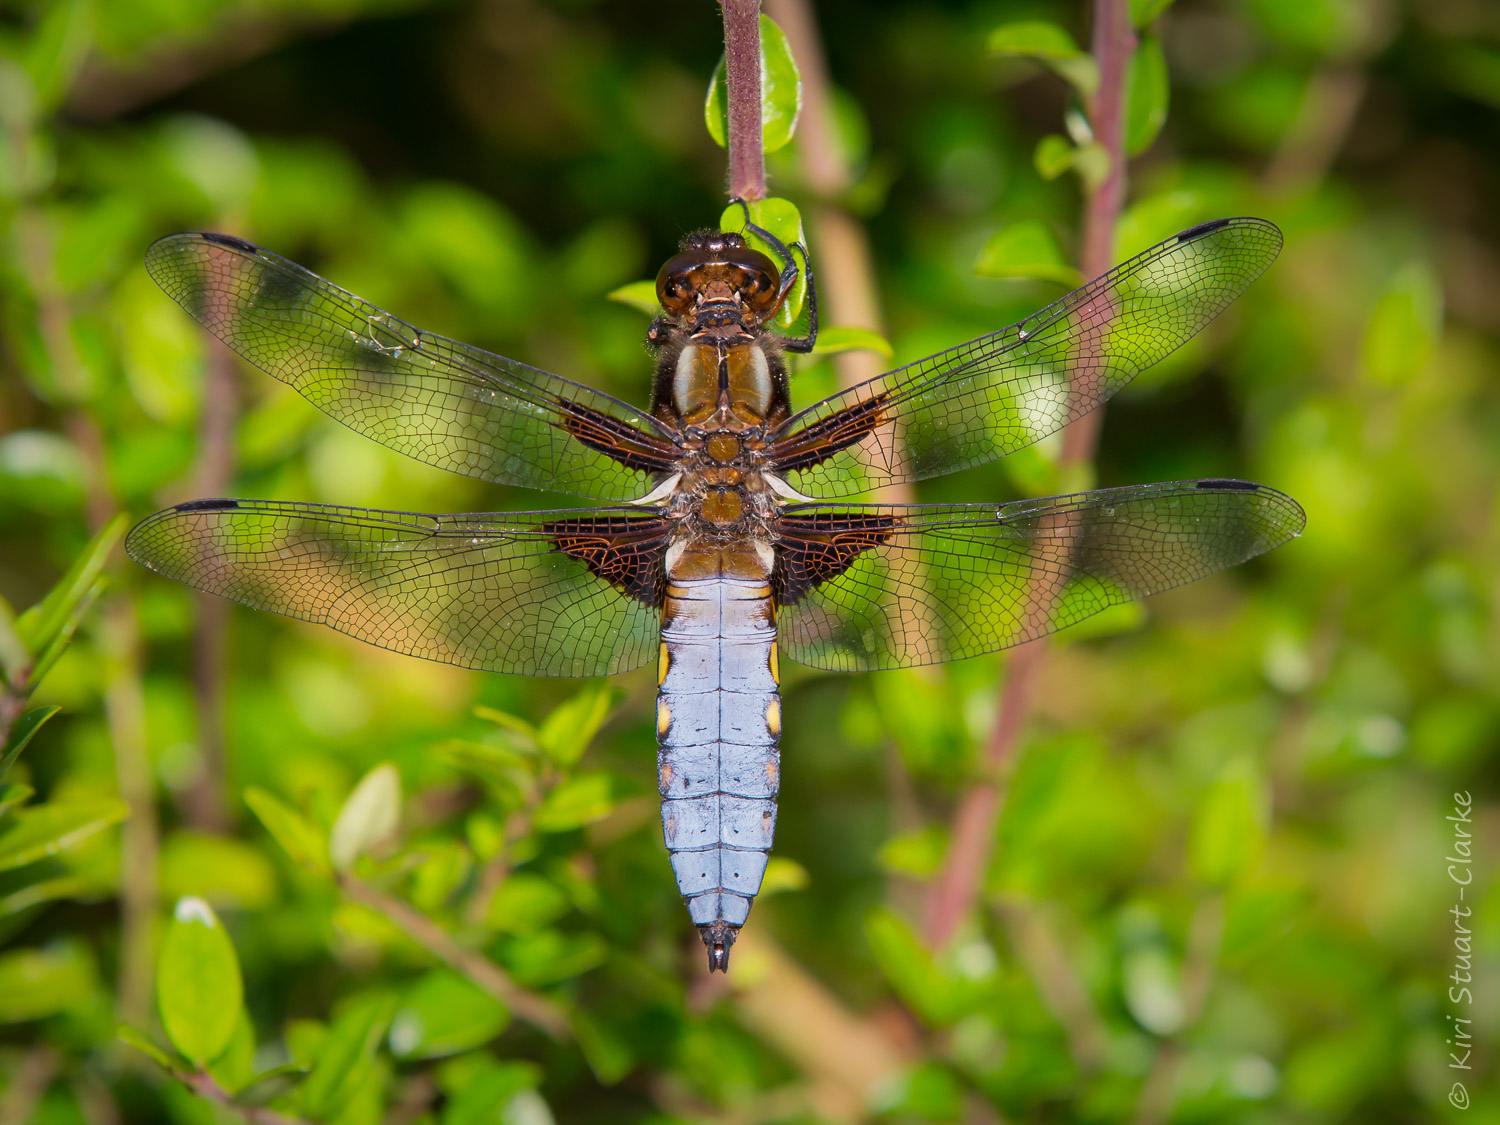 The dusky blue of the male Broad-bodied Chaser dragonfly, Libellula depressa